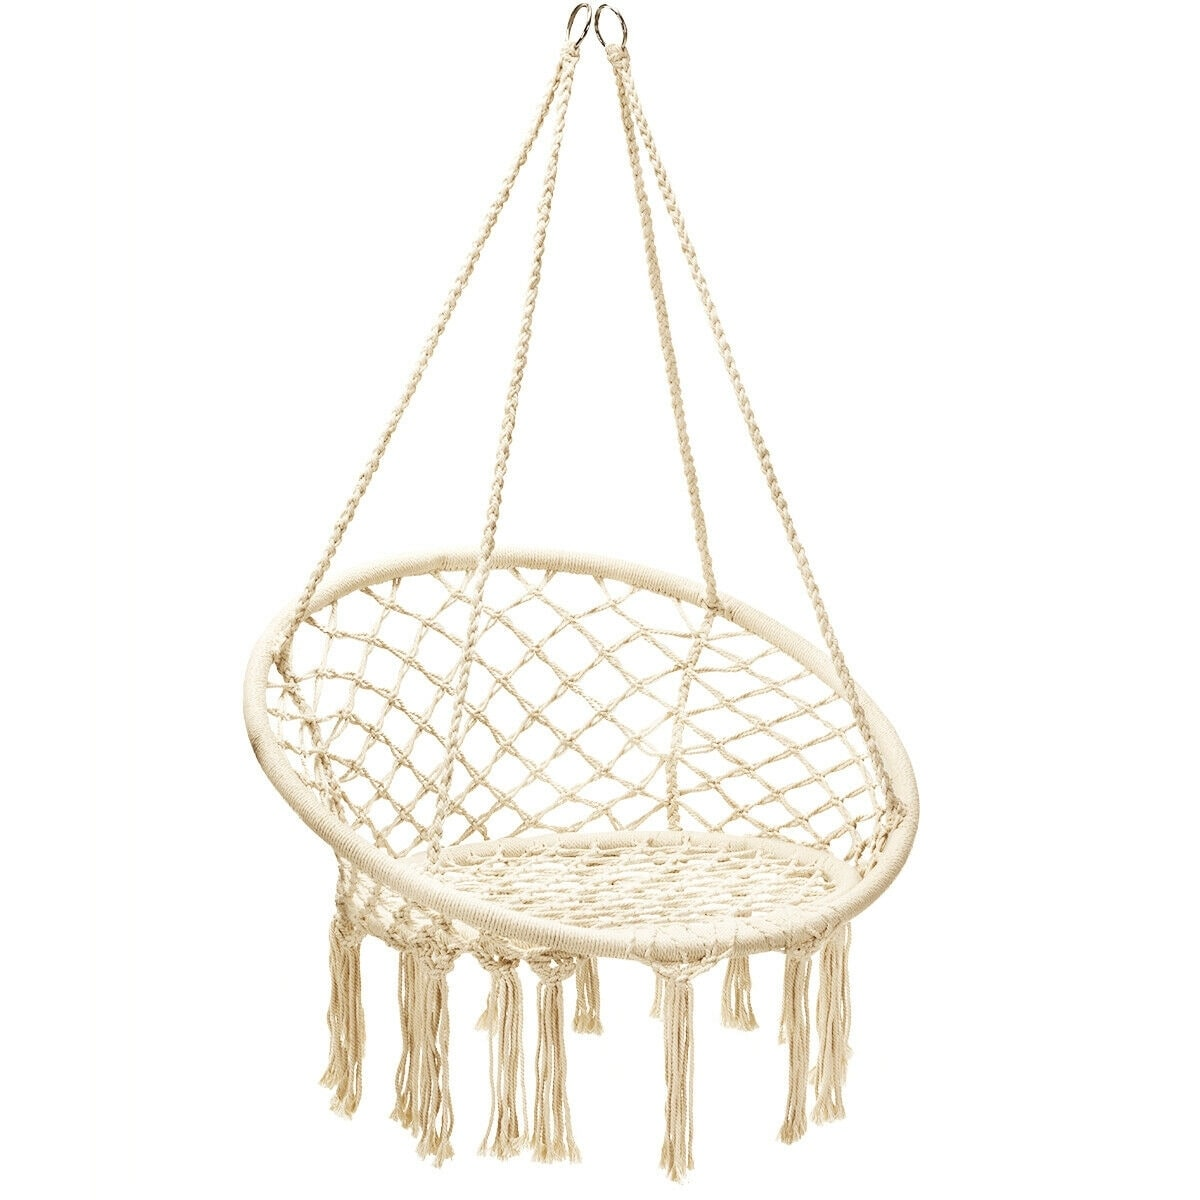 Shop Hanging Macrame Hammock Chair With Handwoven Cotton Backrest Overstock 31865631